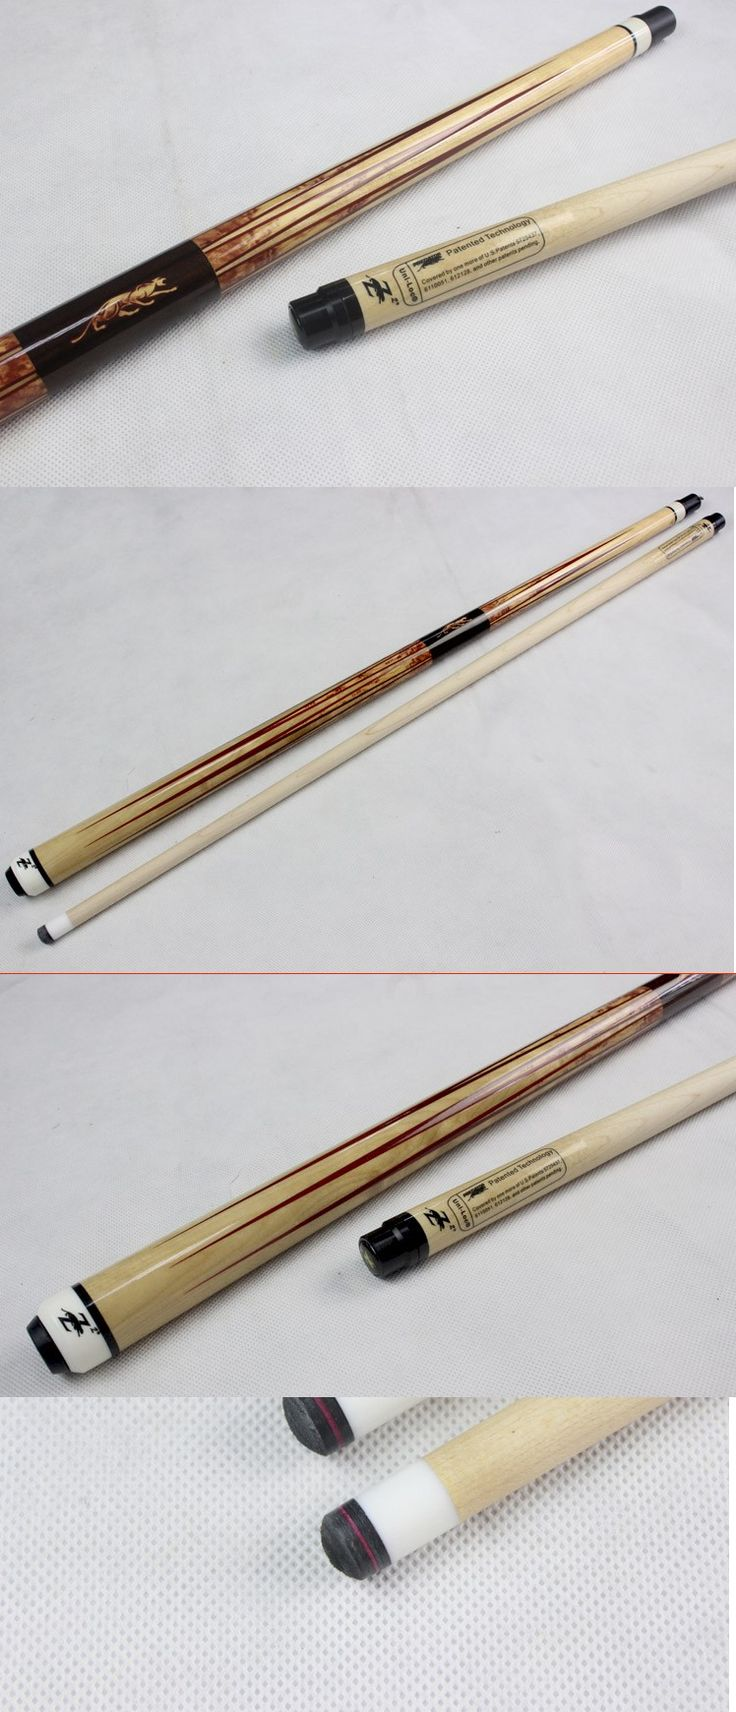 Cue Tips 75188: New Taco De Sinuca Pool Cues Billiard 13Mm Tips 1 2 Jointed Pool Cue Stick -> BUY IT NOW ONLY: $132.72 on eBay!